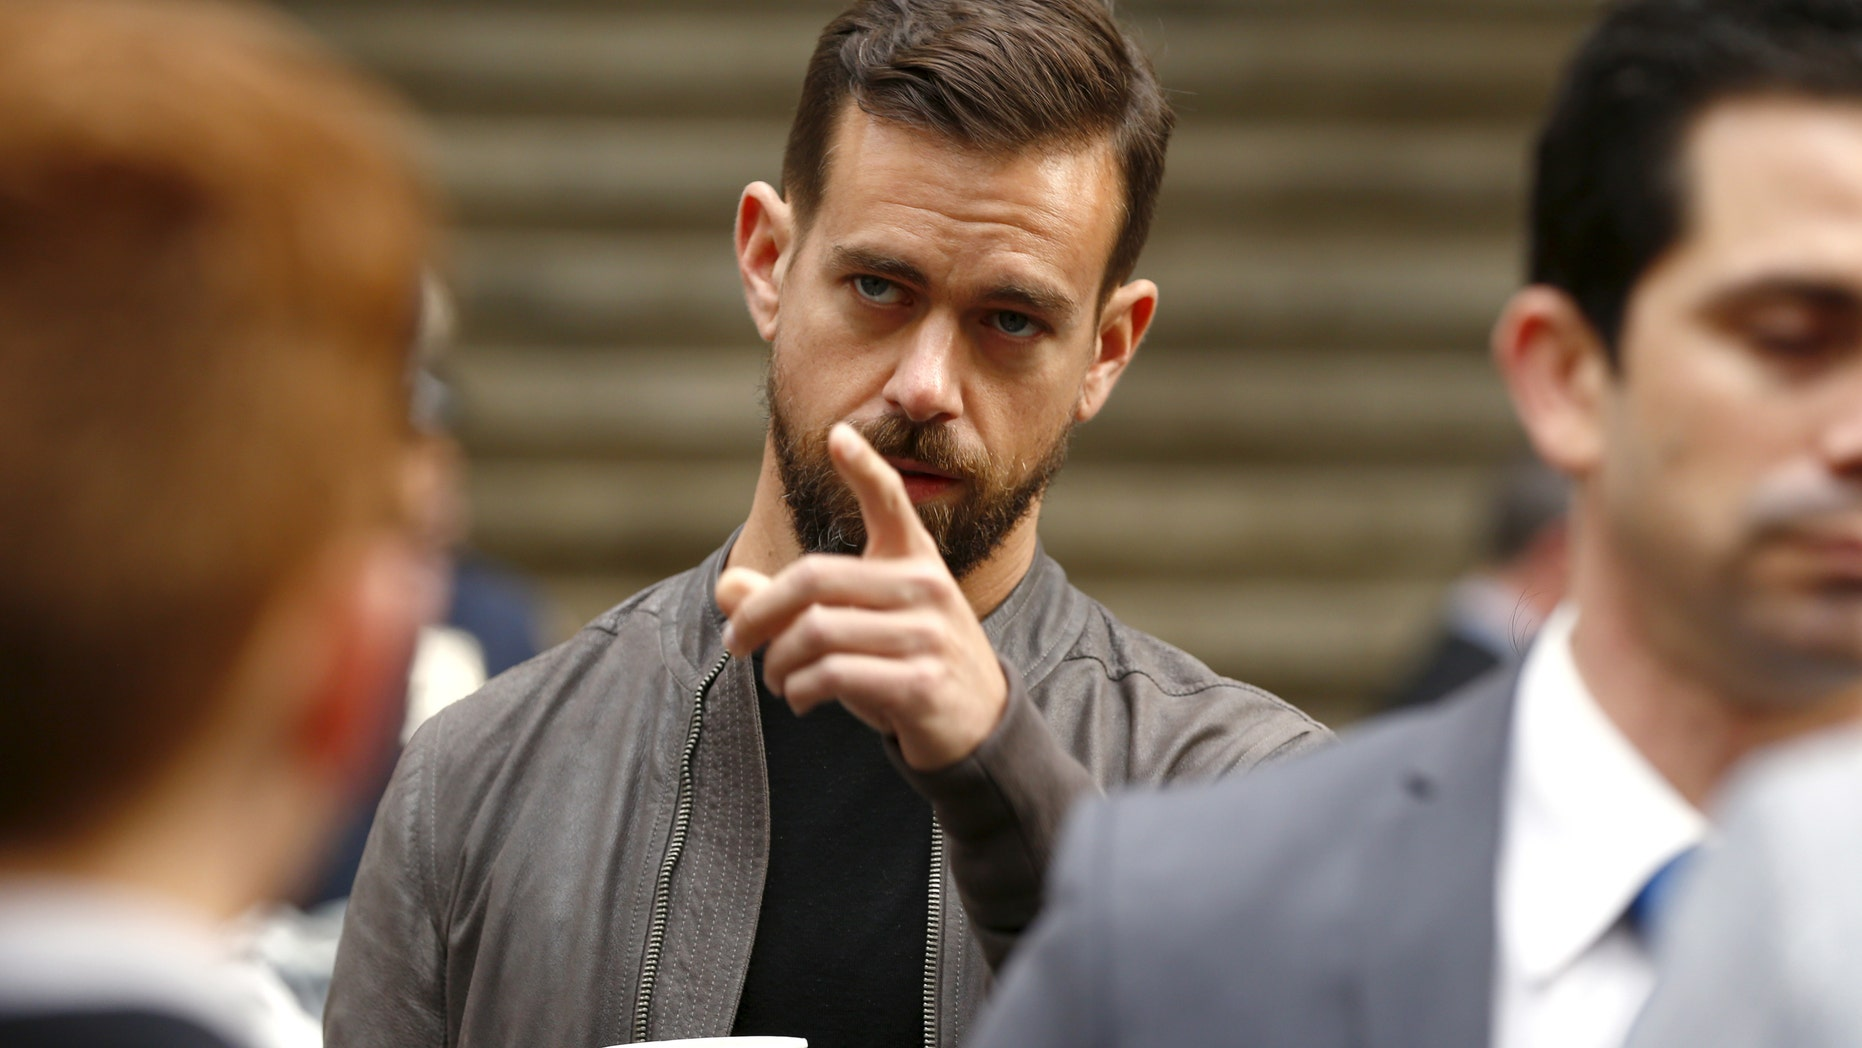 File photo - Jack Dorsey, CEO of Square and CEO of Twitter, arrives at the New York Stock Exchange for the IPO of Square Inc., in New York Nov. 19, 2015. (REUTERS/Lucas Jackson)